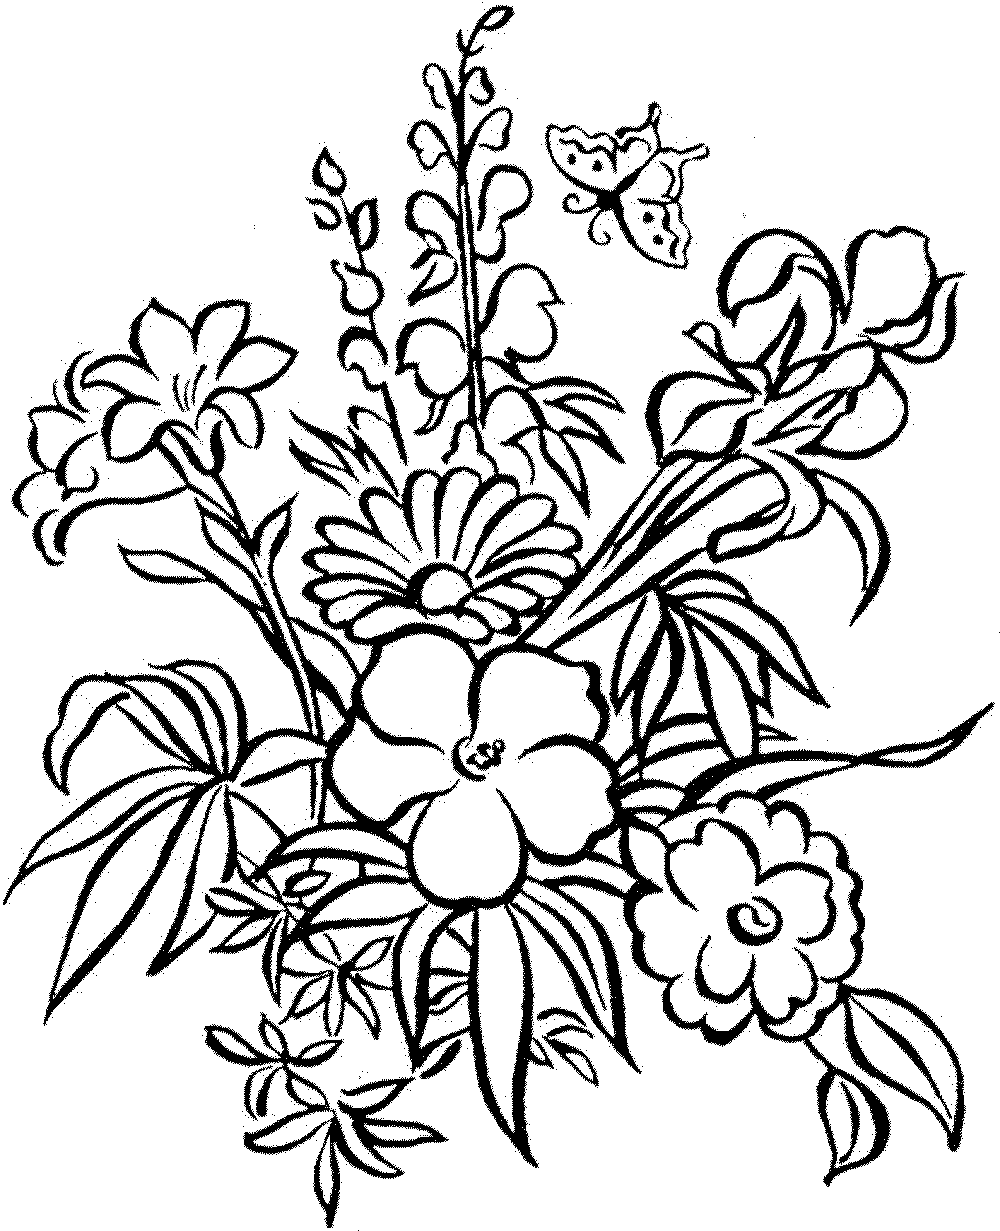 Coloring Pictures for Children Elementary & Teenagers